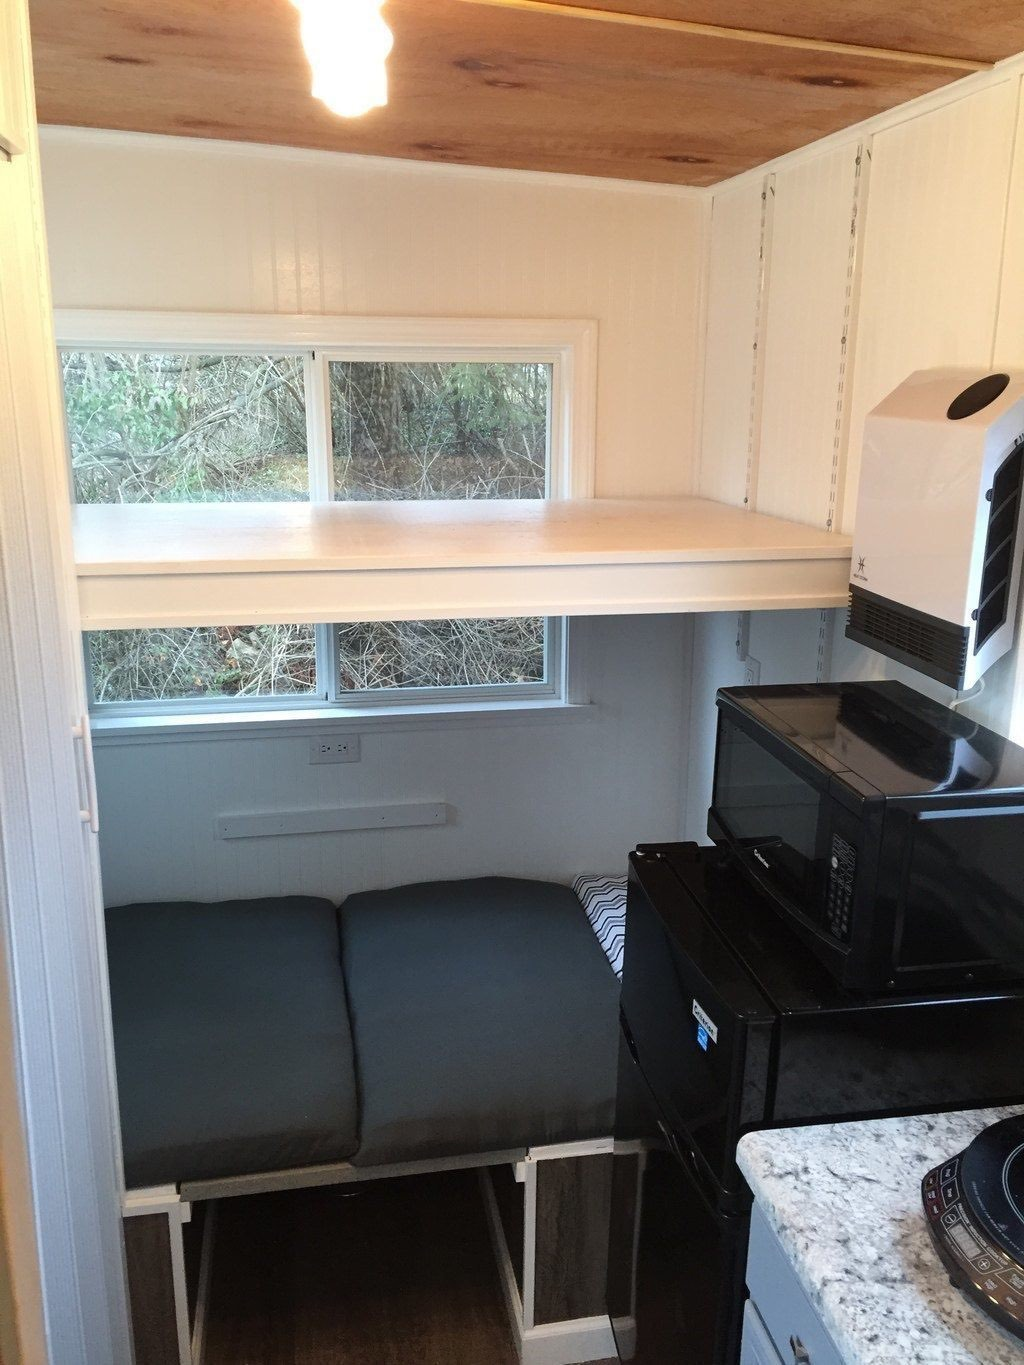 92-square-feet-tiny-house-14